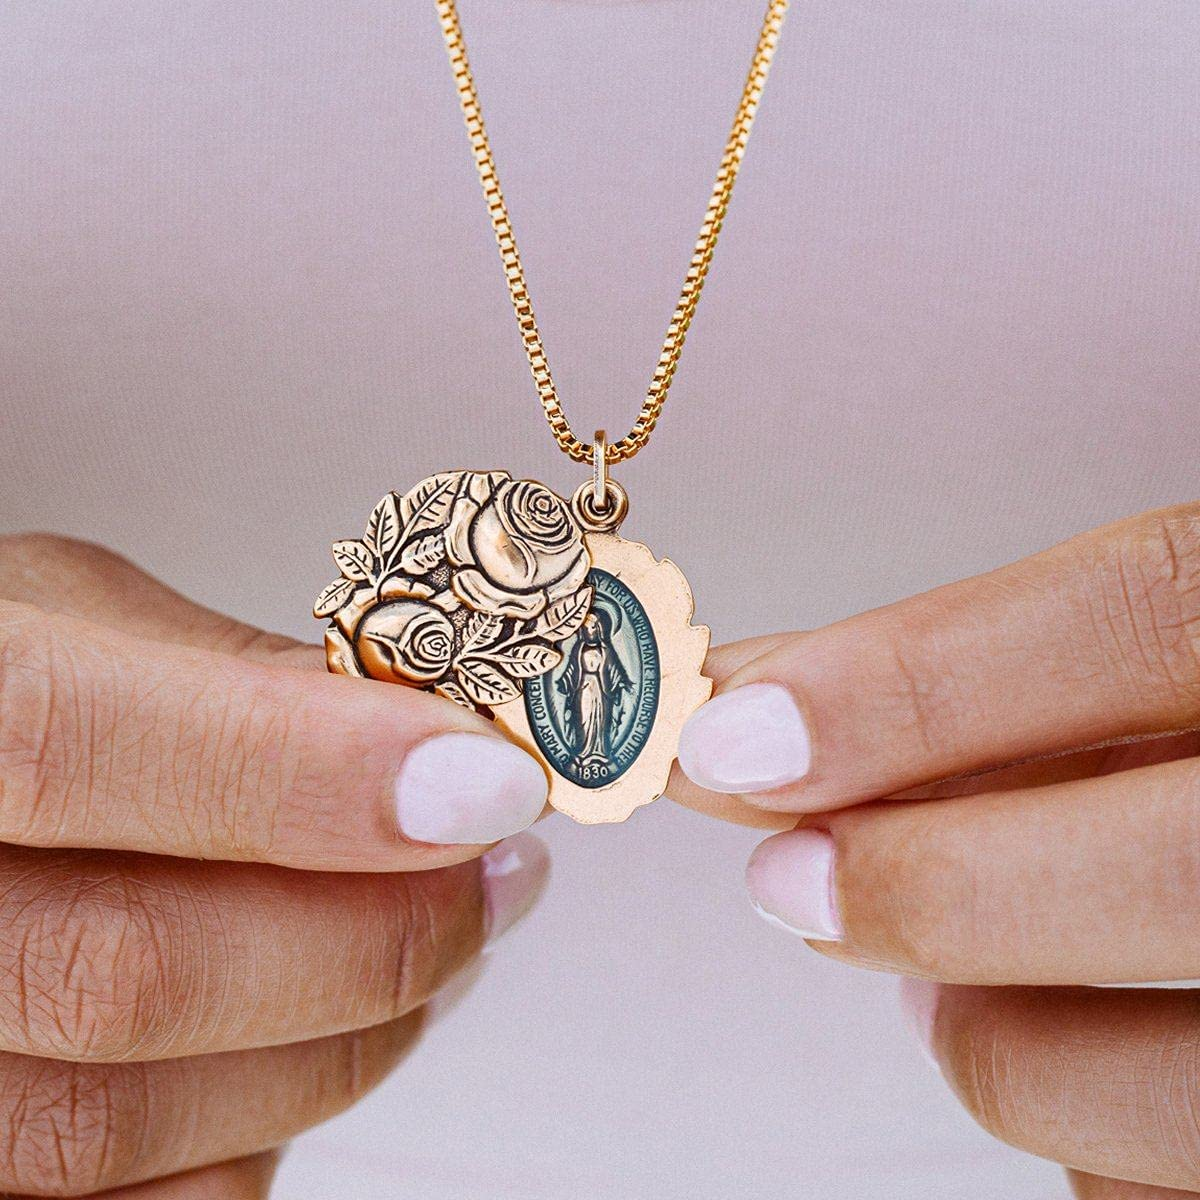 Luca + Danni   Miraculous Locket Necklace For Women Made in USA